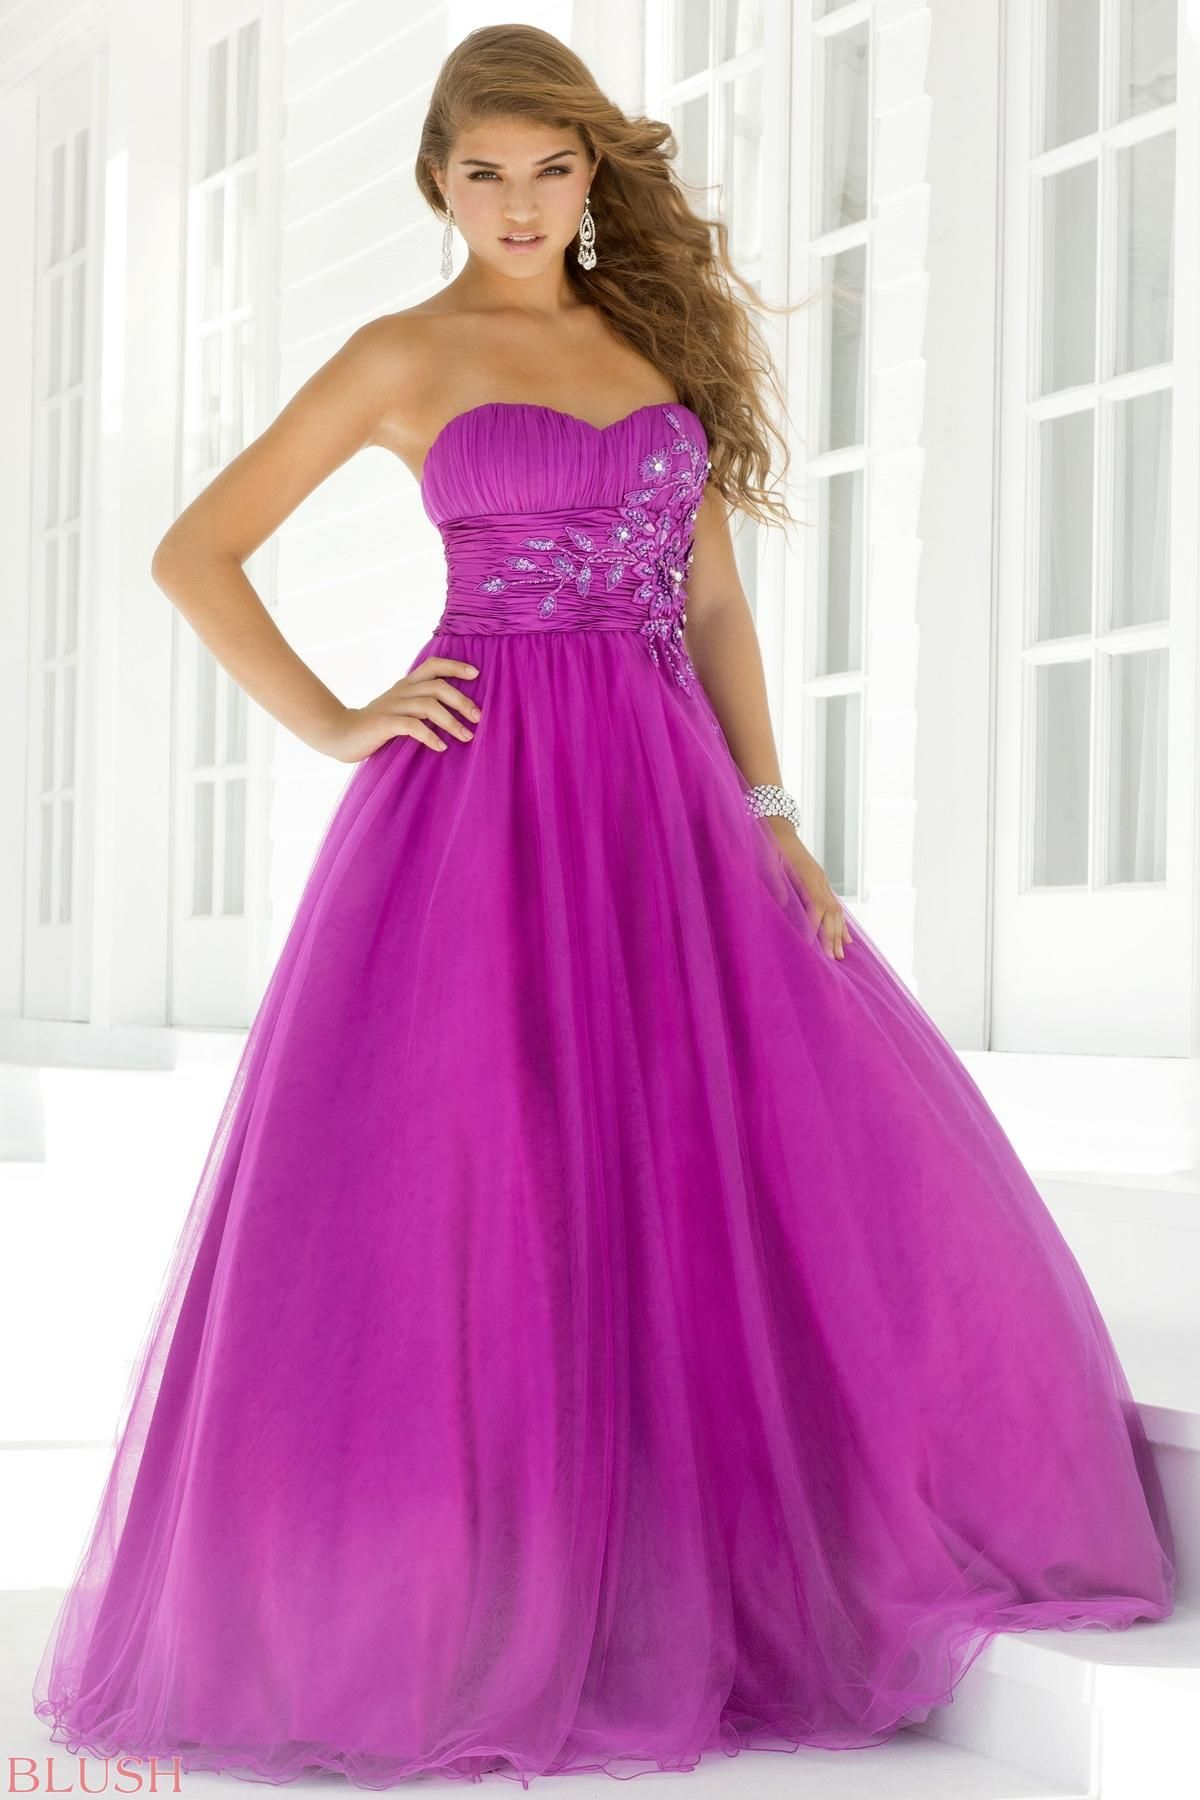 Ball Gowns - Pink by Blush Prom Pink Style 5108 | Bride Maids ...